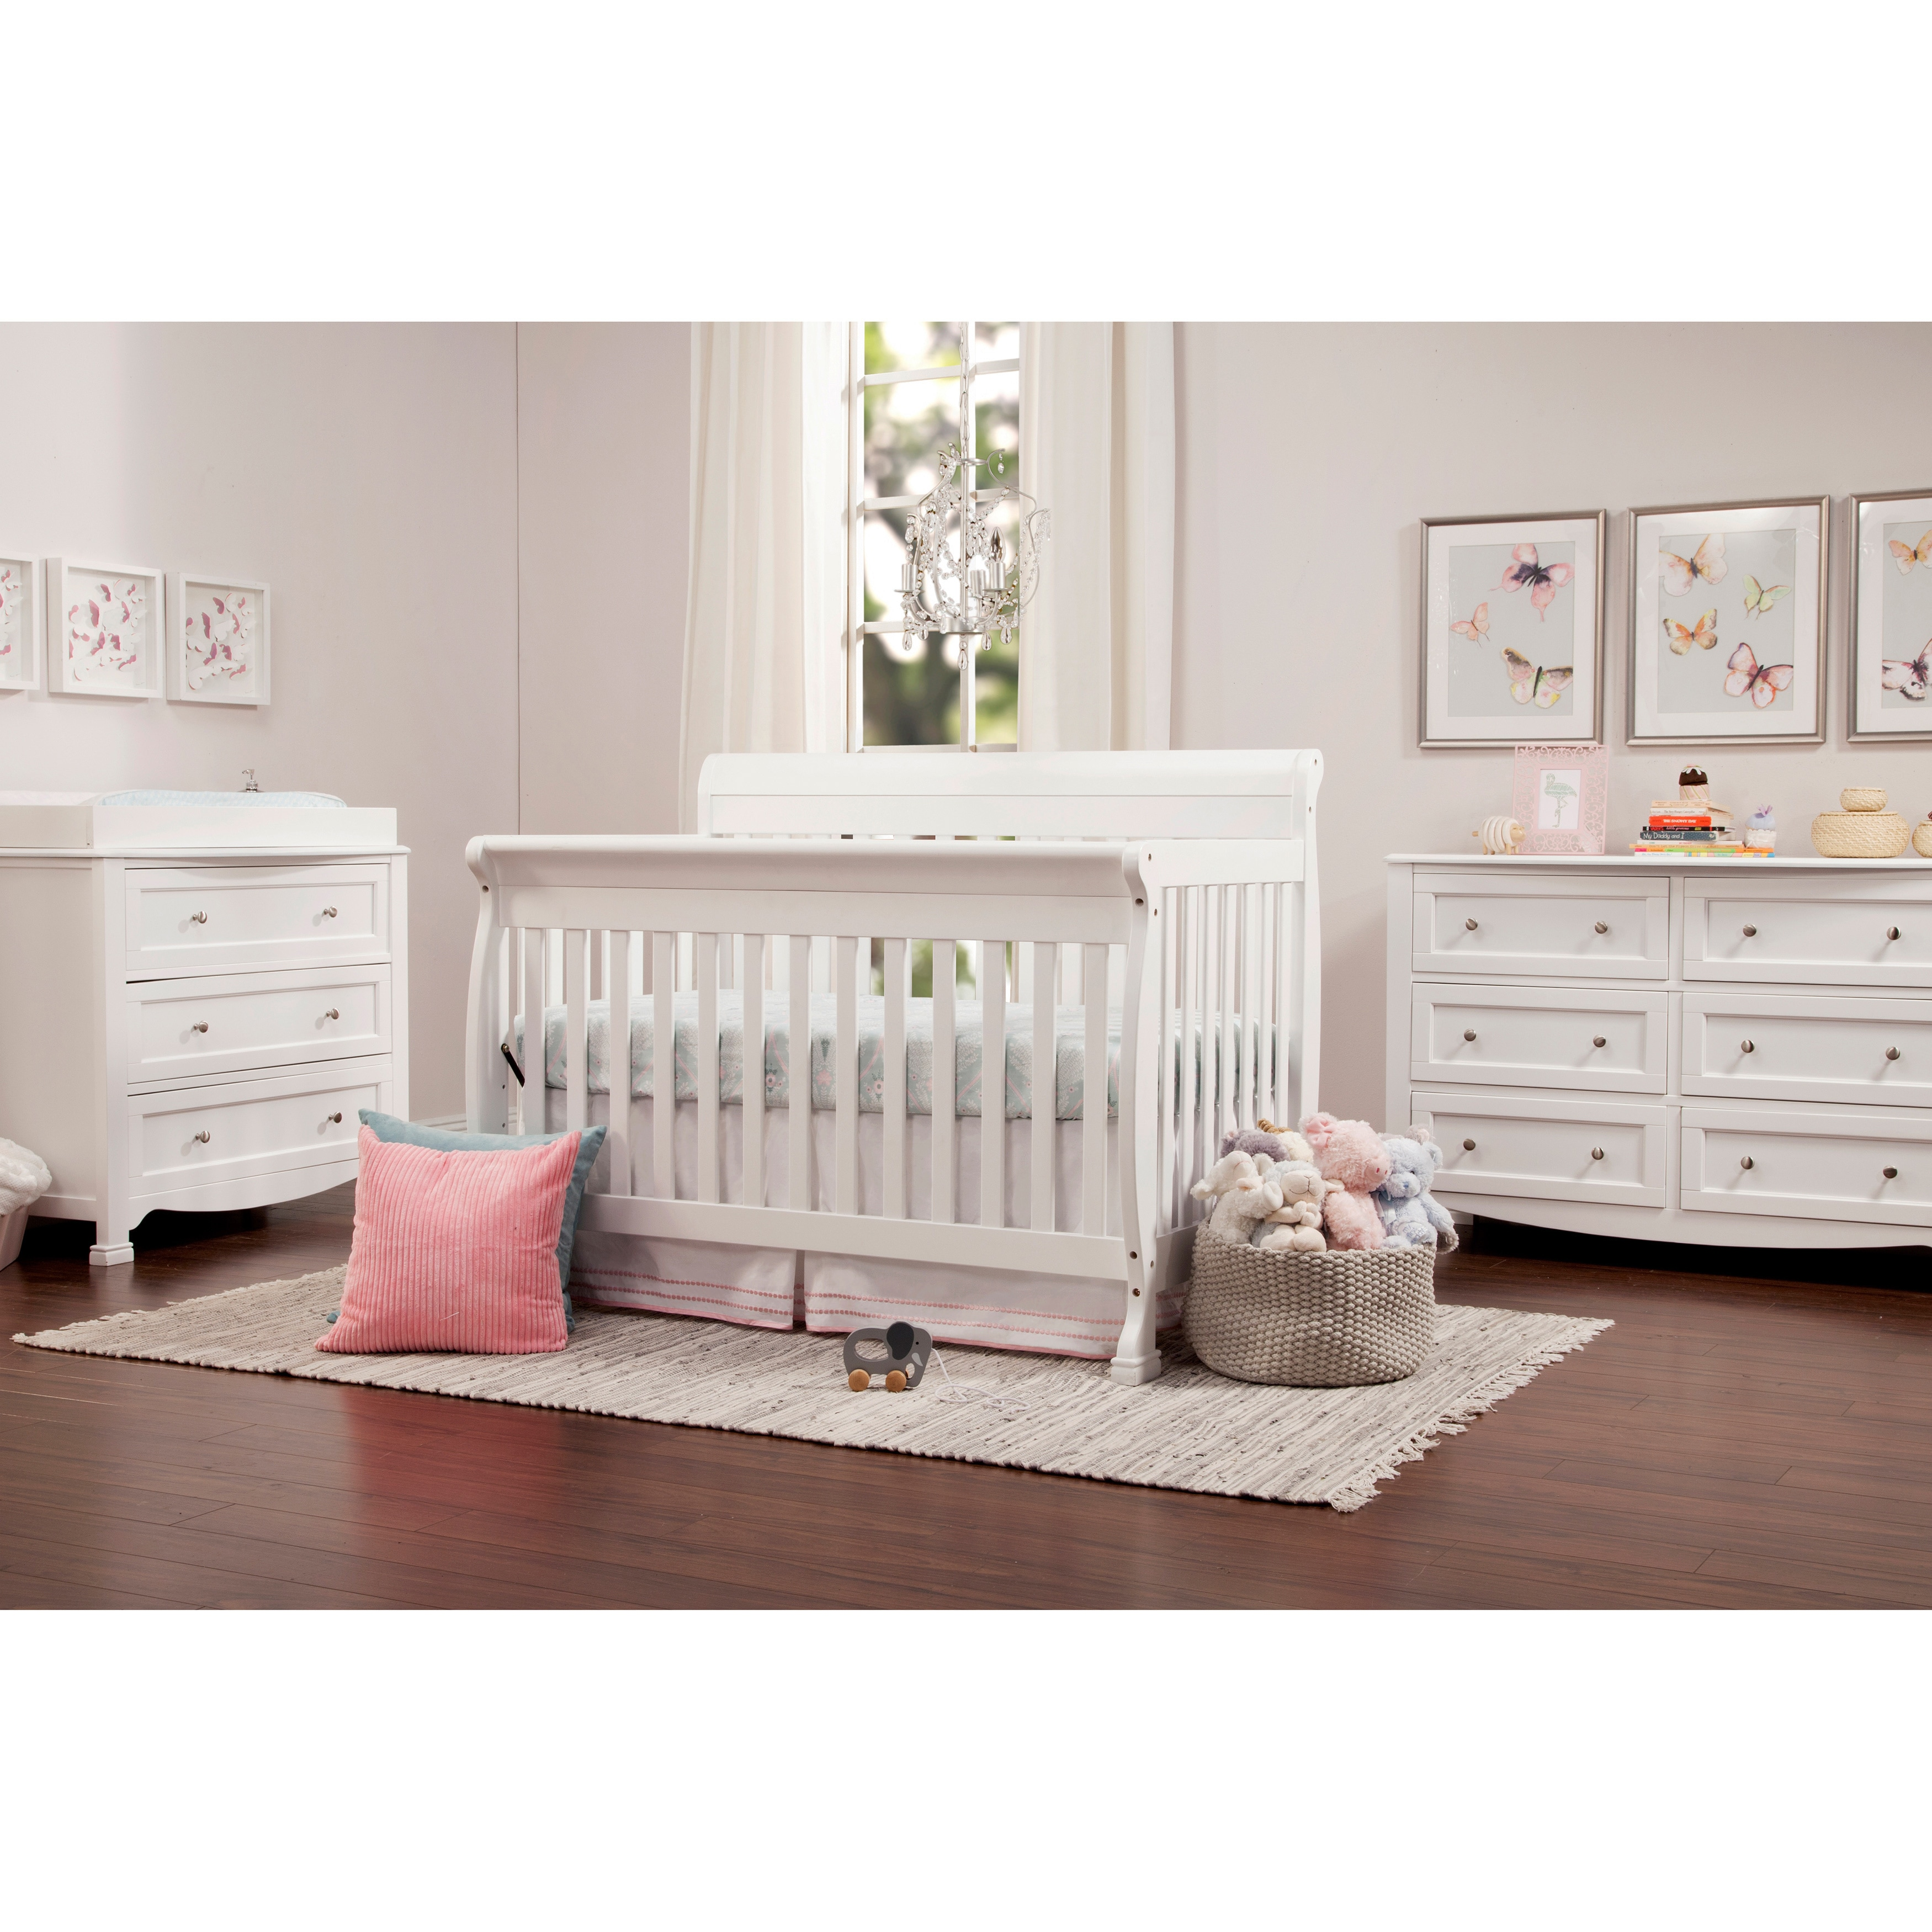 Baby bed vs bassinet - Davinci Kalani 4 In 1 Crib With Toddler Rail